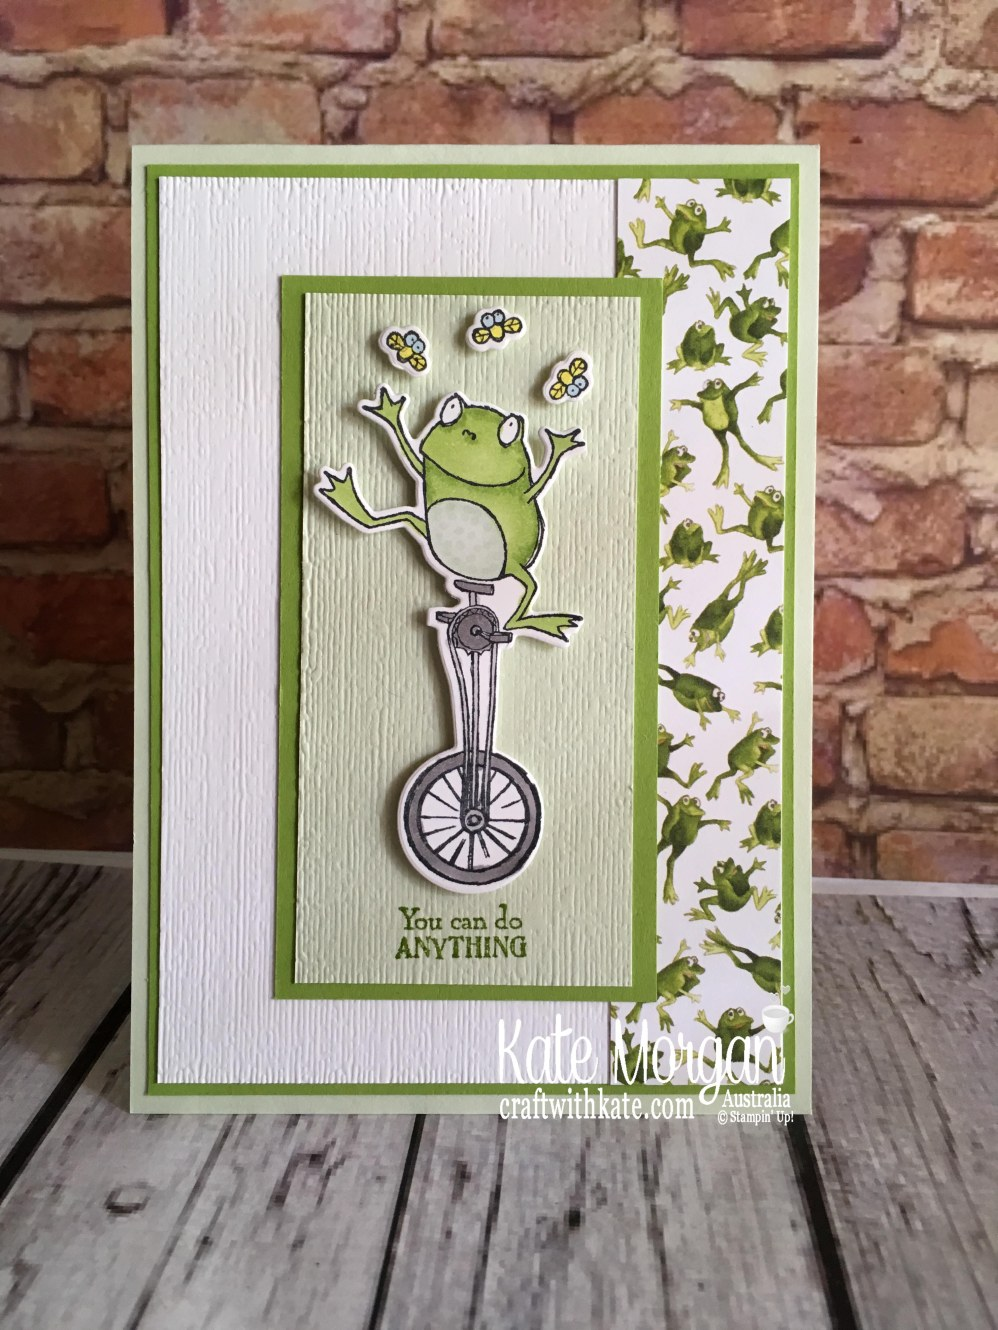 So Hoppy Together Frogs by Kate Morgan, Stampin Up Australia..jpg